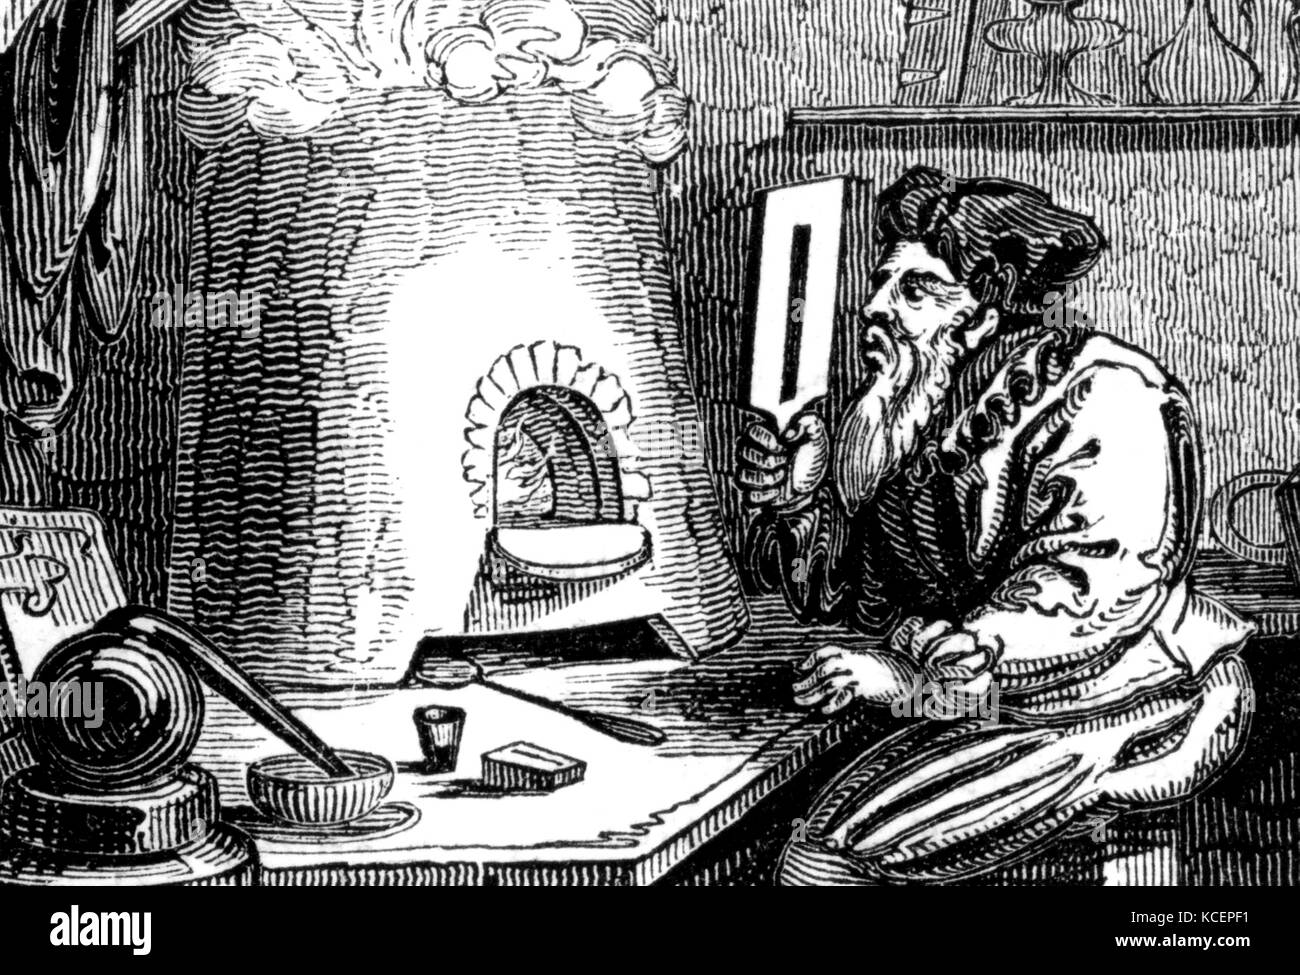 Engraving titled 'An Alchemist' which is possibly Basil Valentine (1394-1450) an alchemist, author and possibly - Stock Image